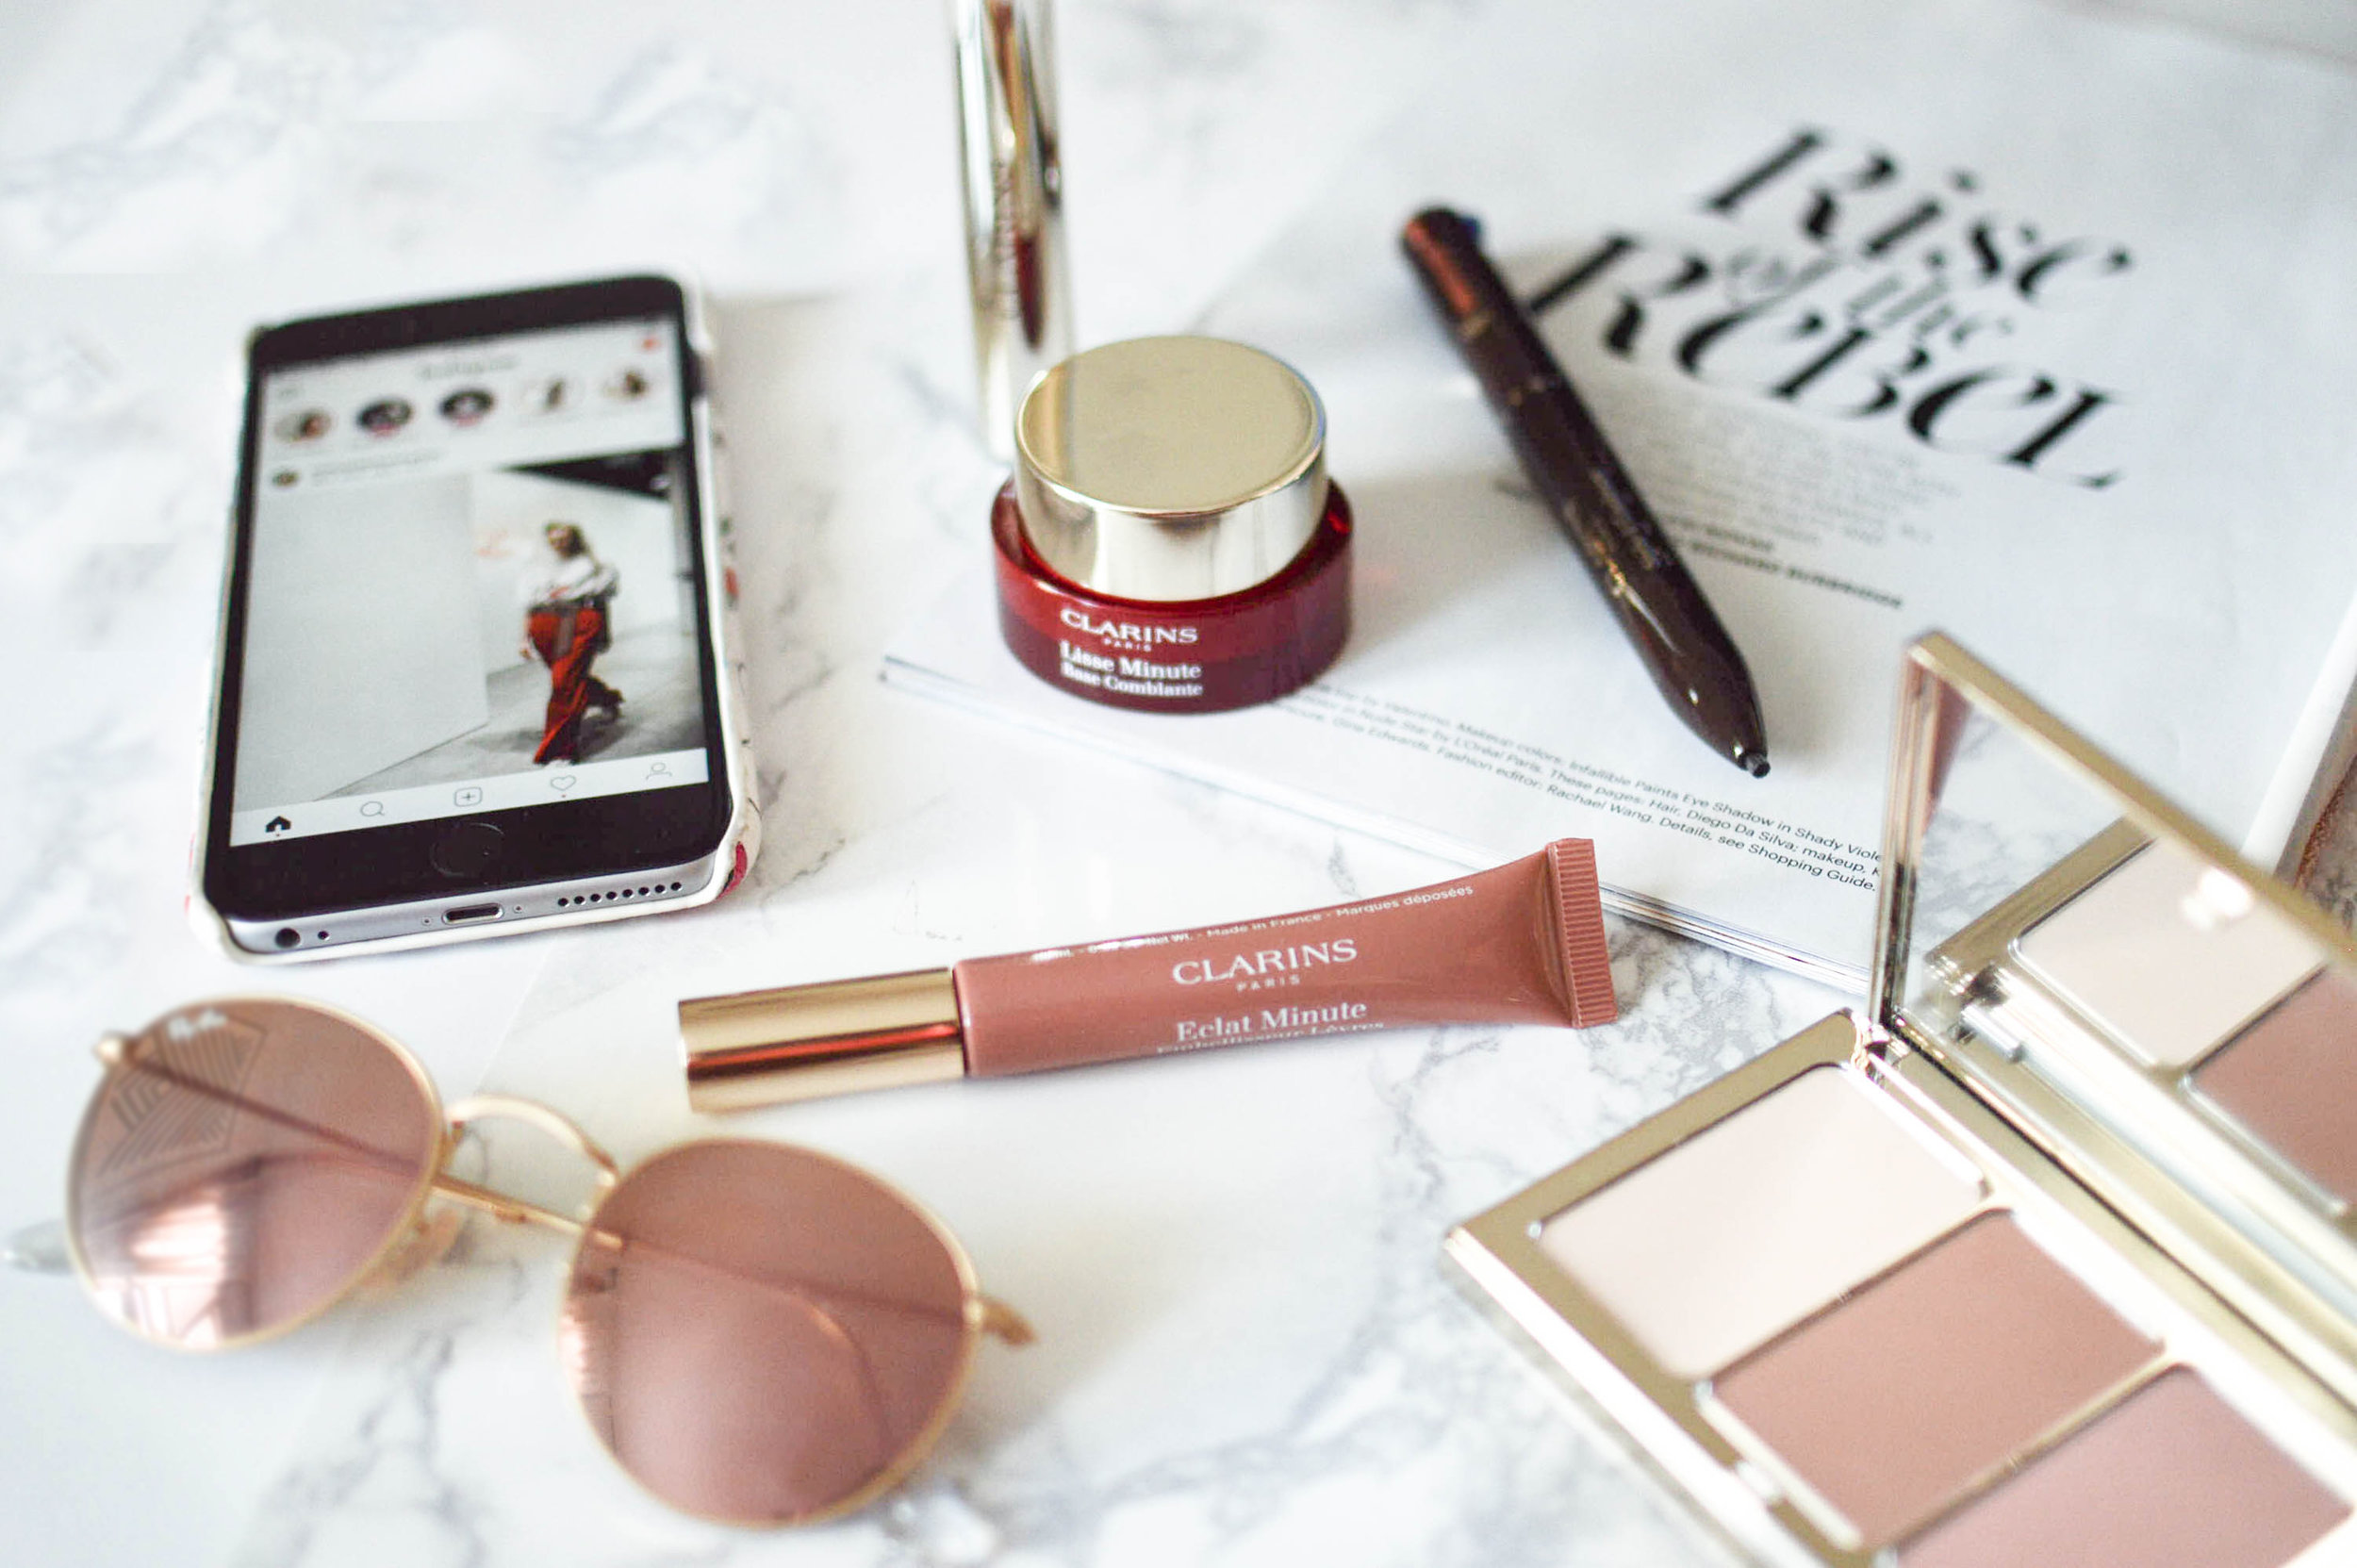 10-Minute Morning Beauty Routine with Clarins via. www.birdieshoots.com